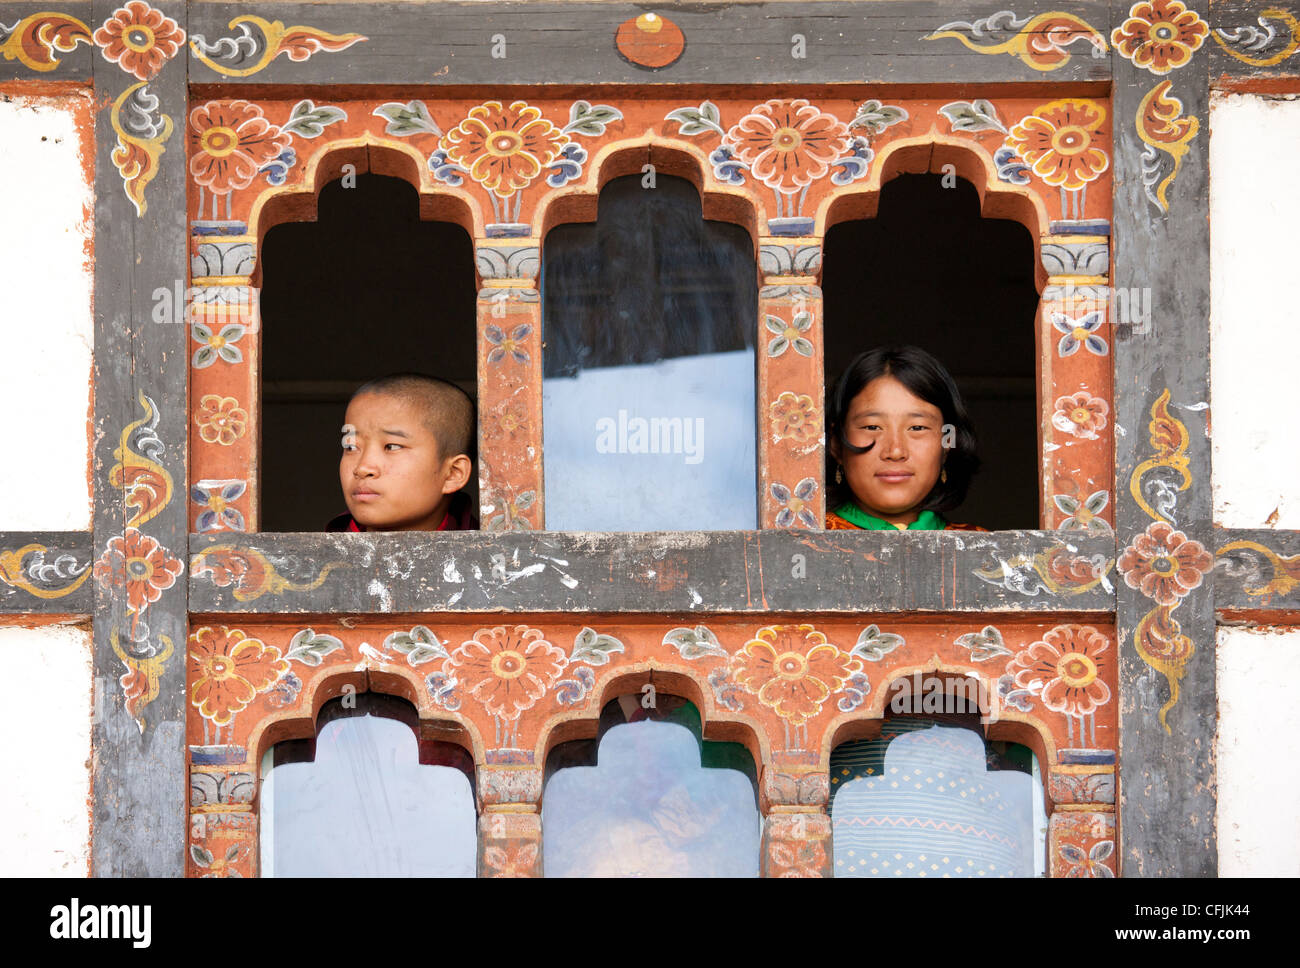 Girl and boy looking out of windows, Wangdue Phodrang (Wangdi), Bhutan, Asia - Stock Image